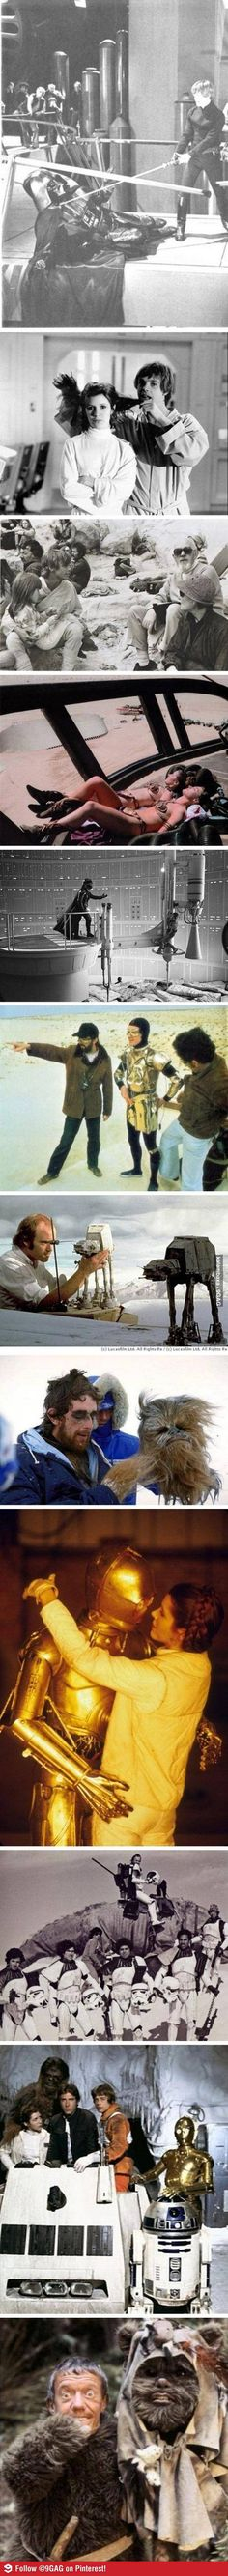 Awesome photos from Star Wars